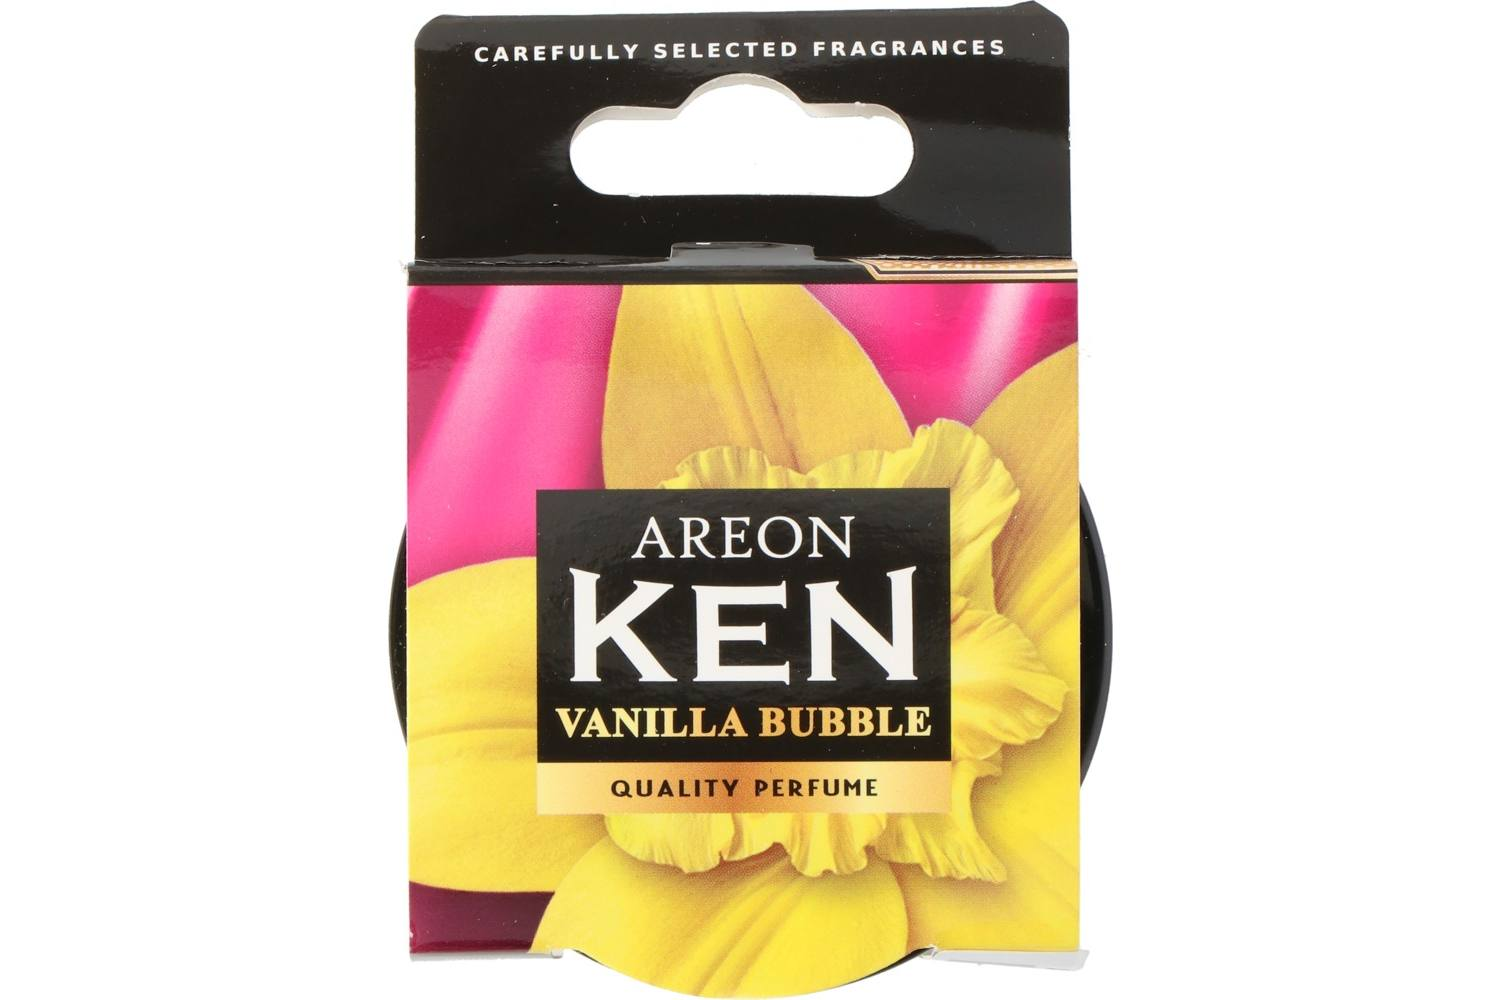 Air freshener, Areon Ken, vanilla bubble 2